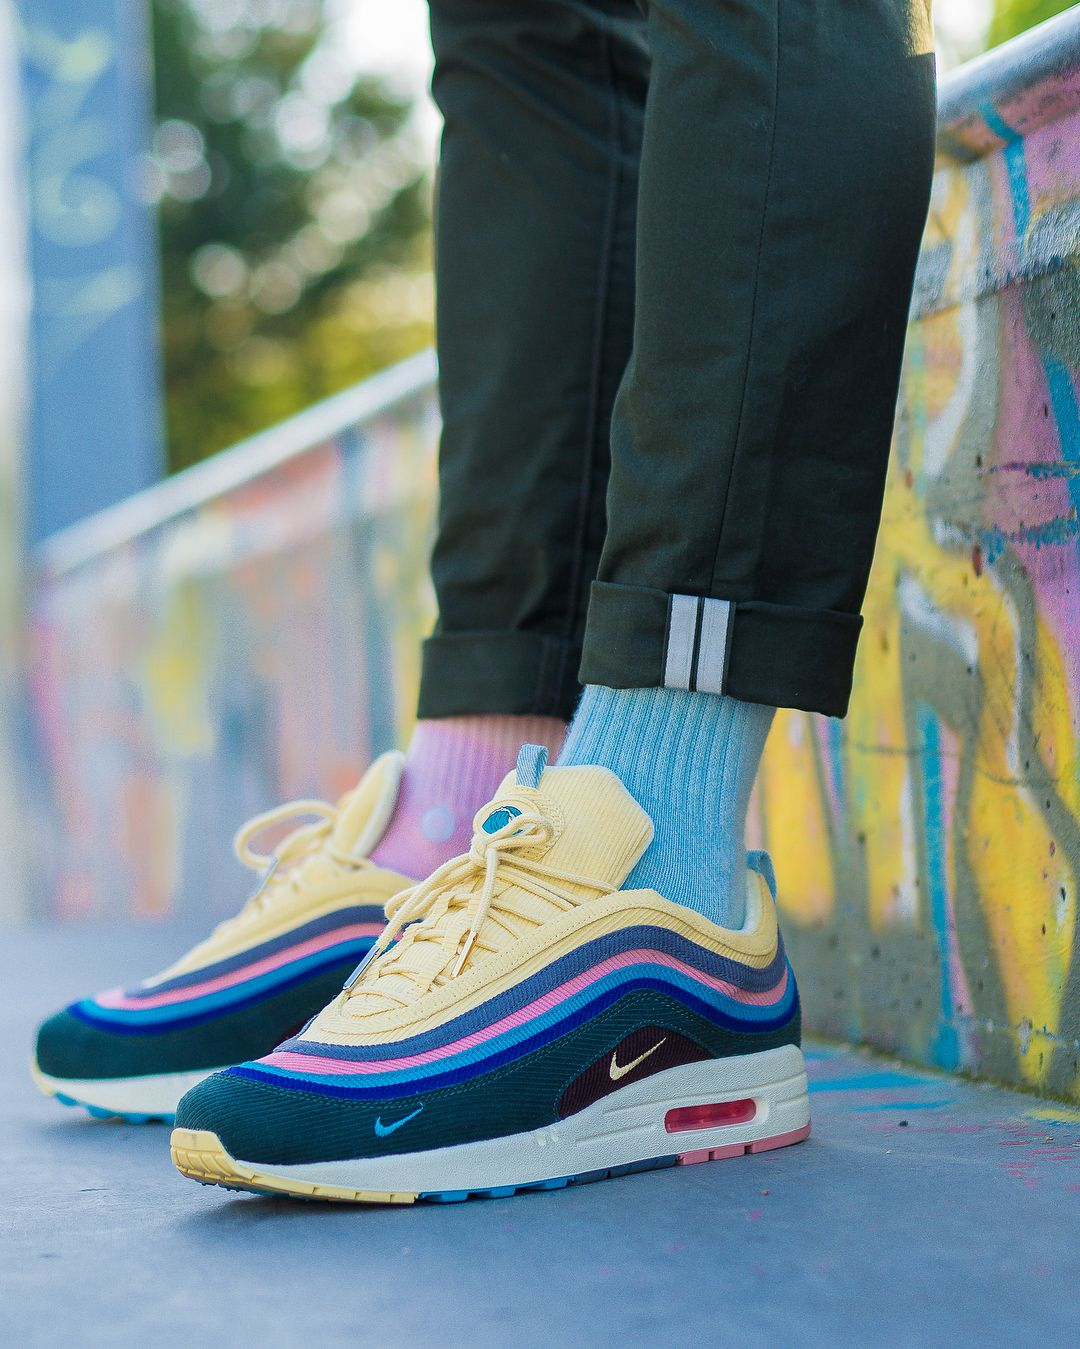 Sean Wotherspoon x Nike Air Max 197 | SNEAKERS in 2019